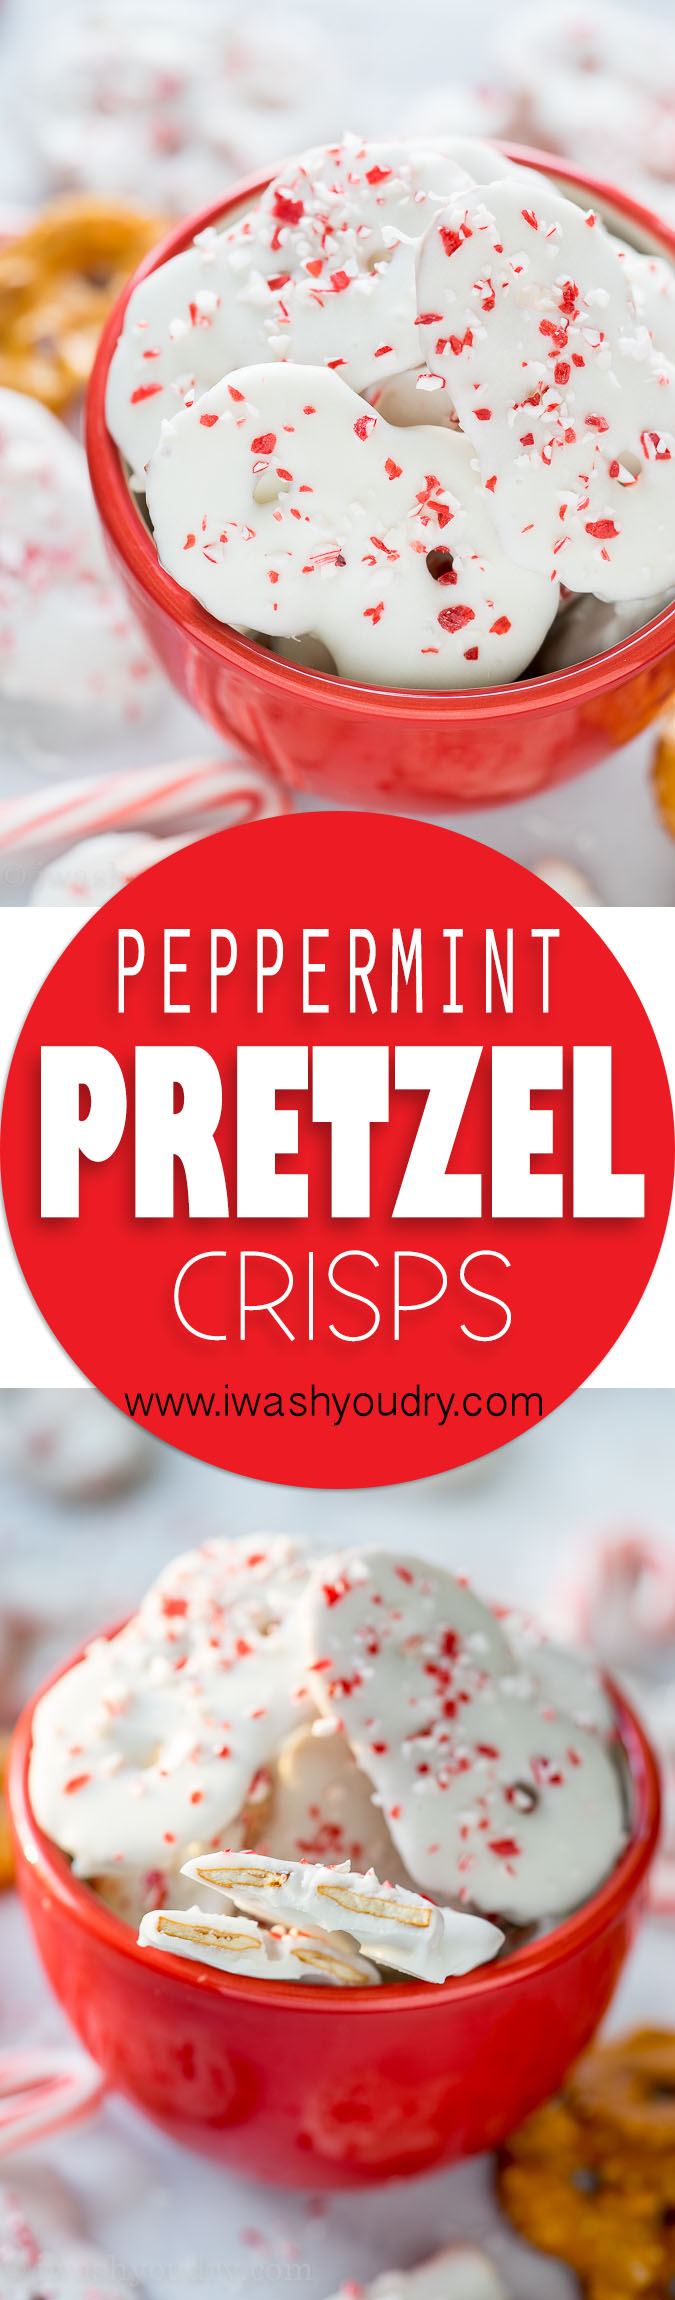 These super easy Peppermint Pretzel Crisps are a great treat for neighbors or for munching on during Christmas time!